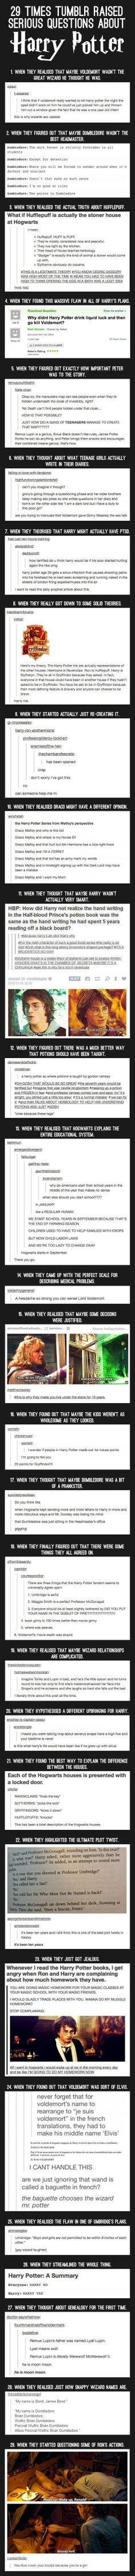 29 Times Tumblr Raised Serious Questions About Harry Potter - I would leave out a few, but some are very good - especially the ones about the houses.